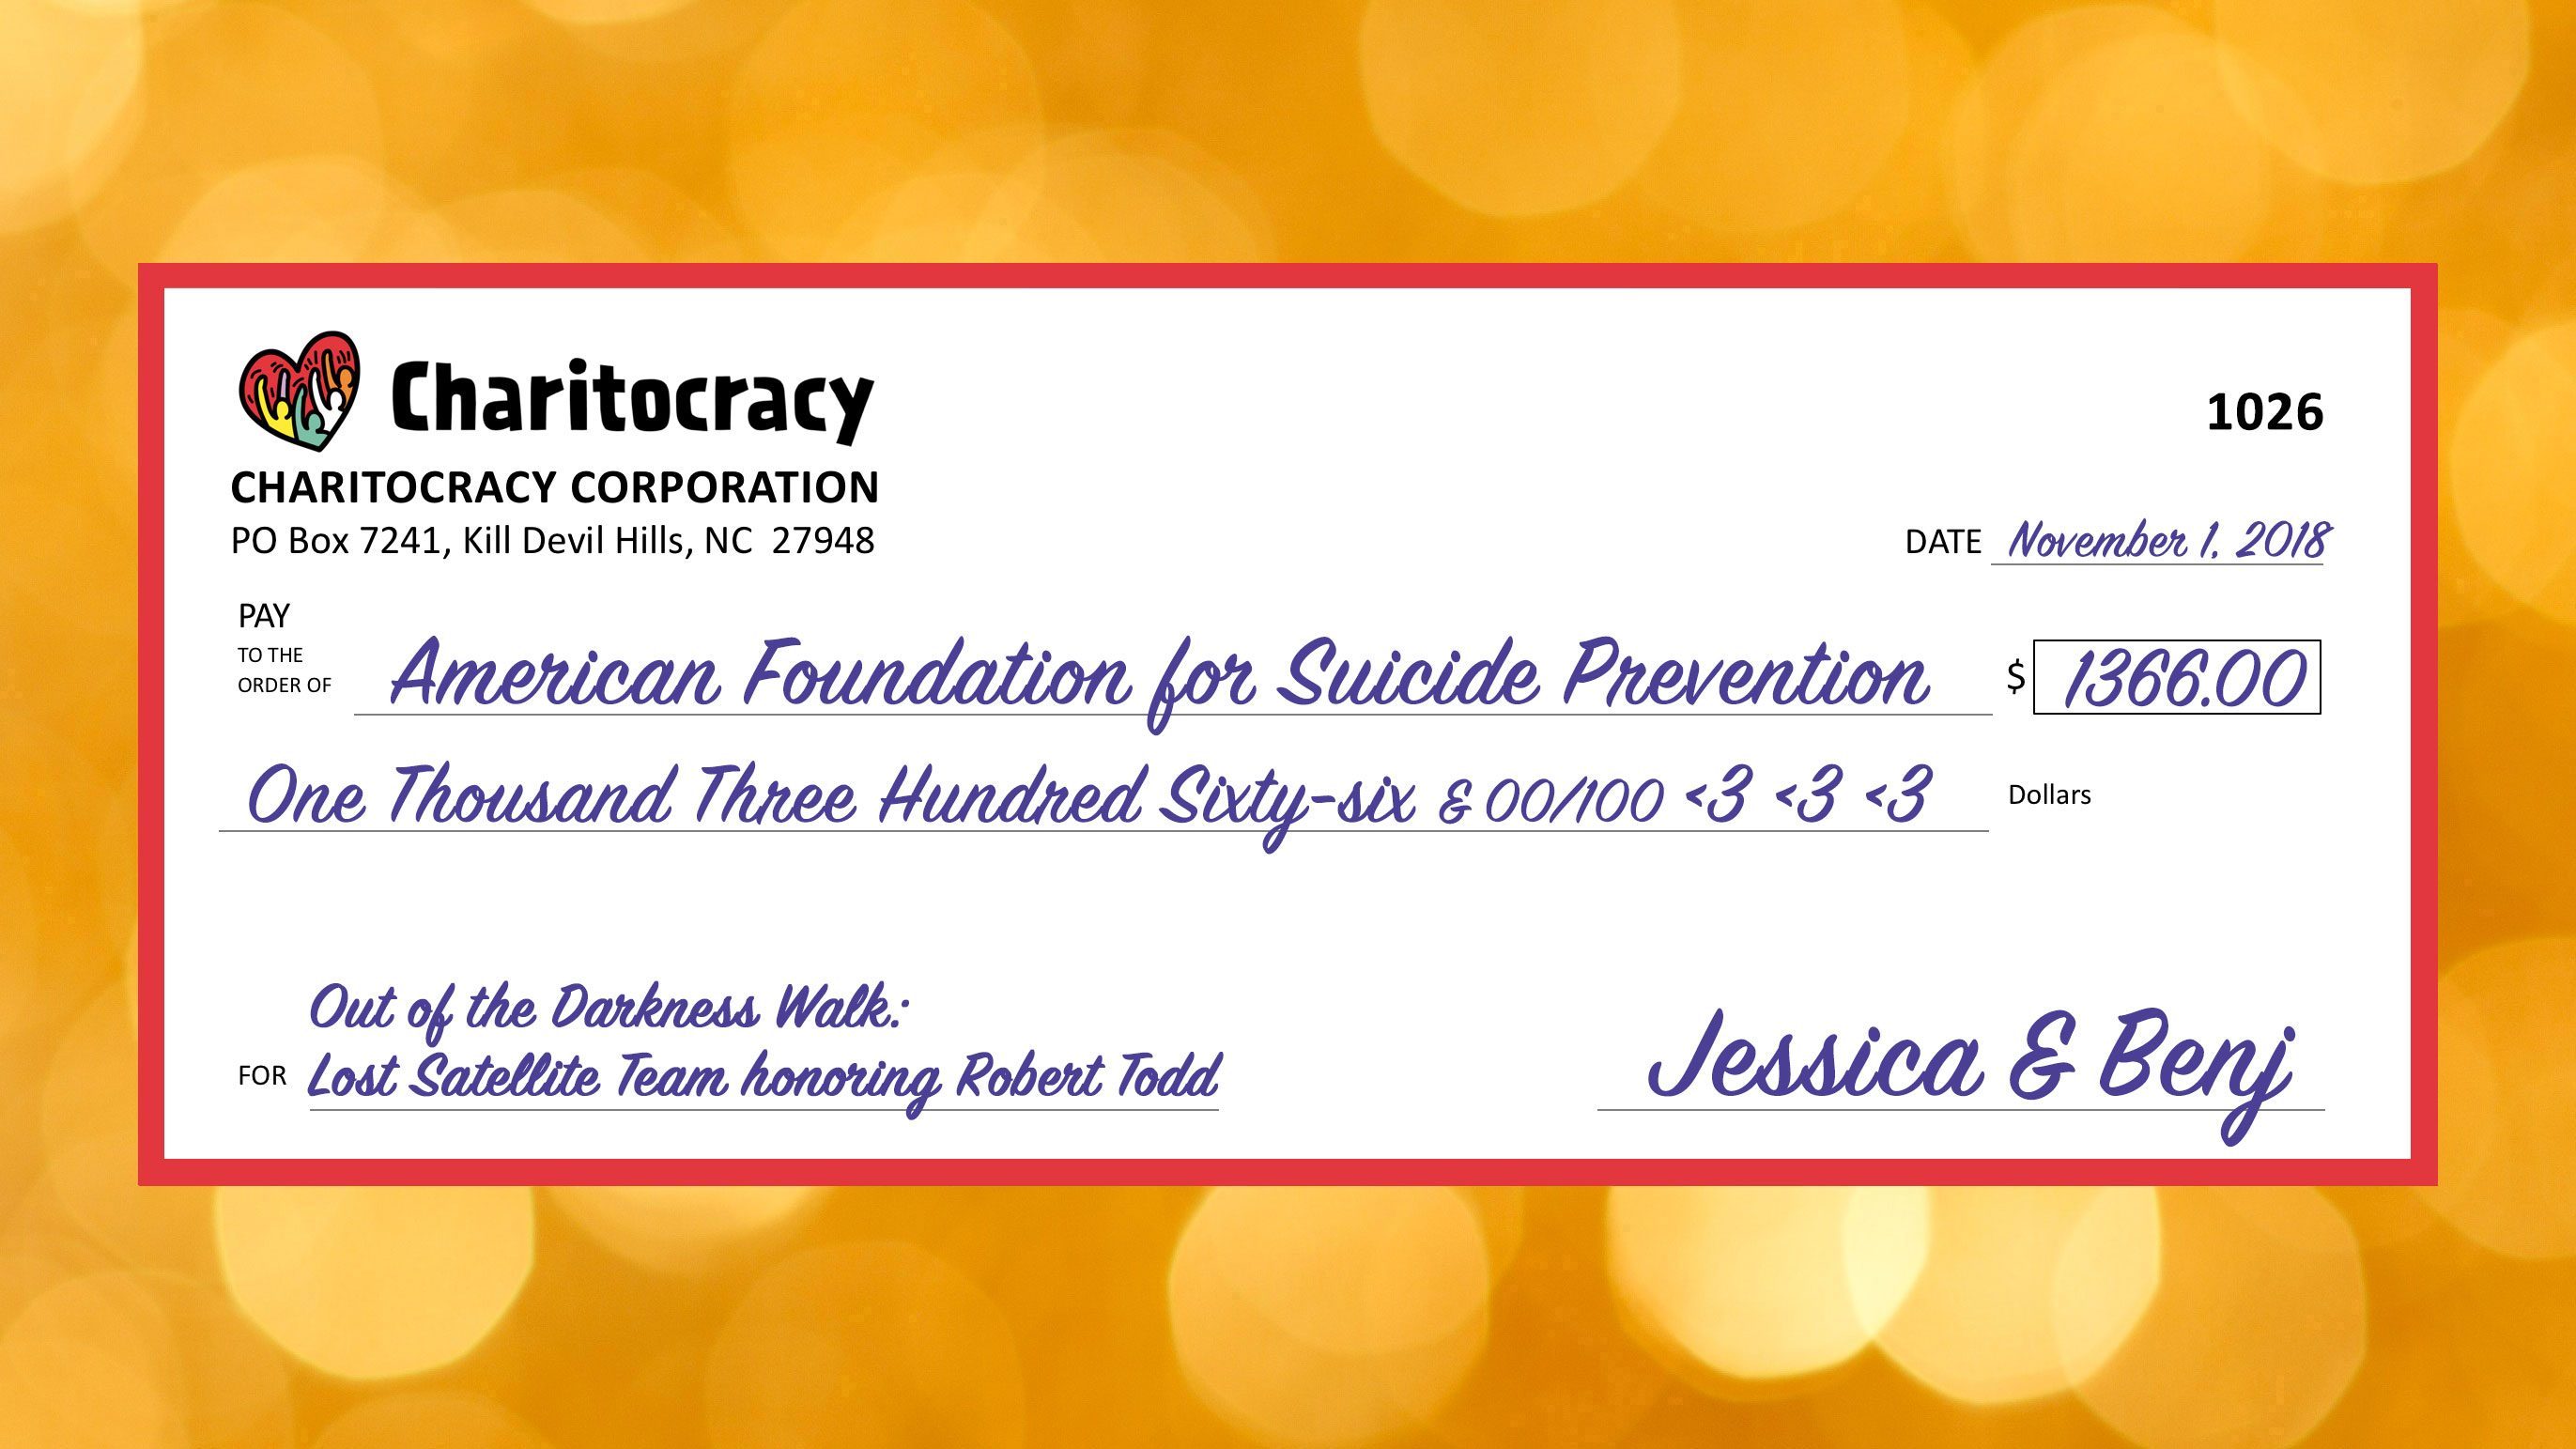 Charitocracy's 26th check to October winner American Foundation for Suicide Prevention for $1366